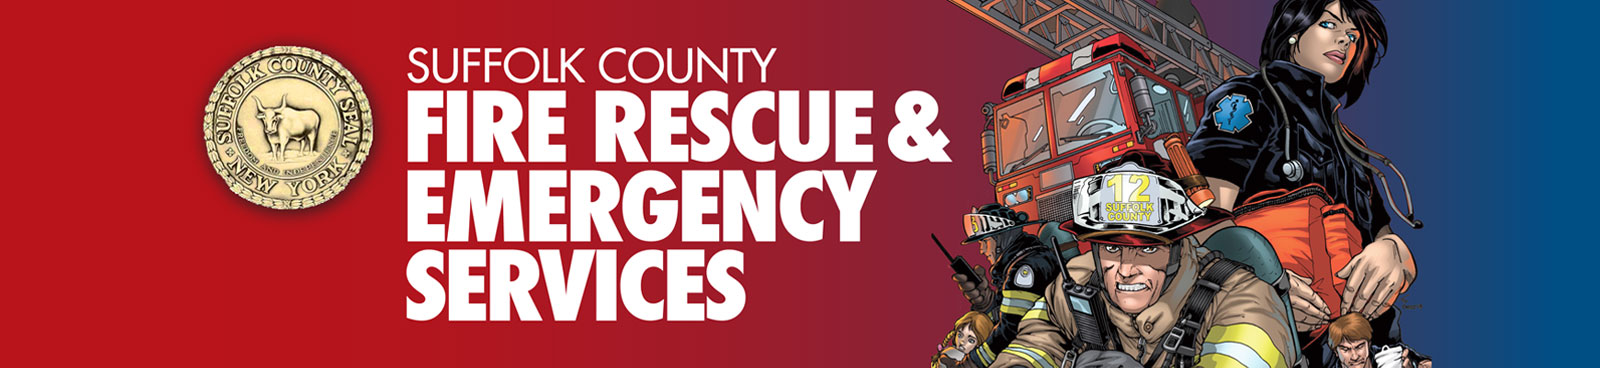 Suffolk County Fire Rescue & Emergency Service Header